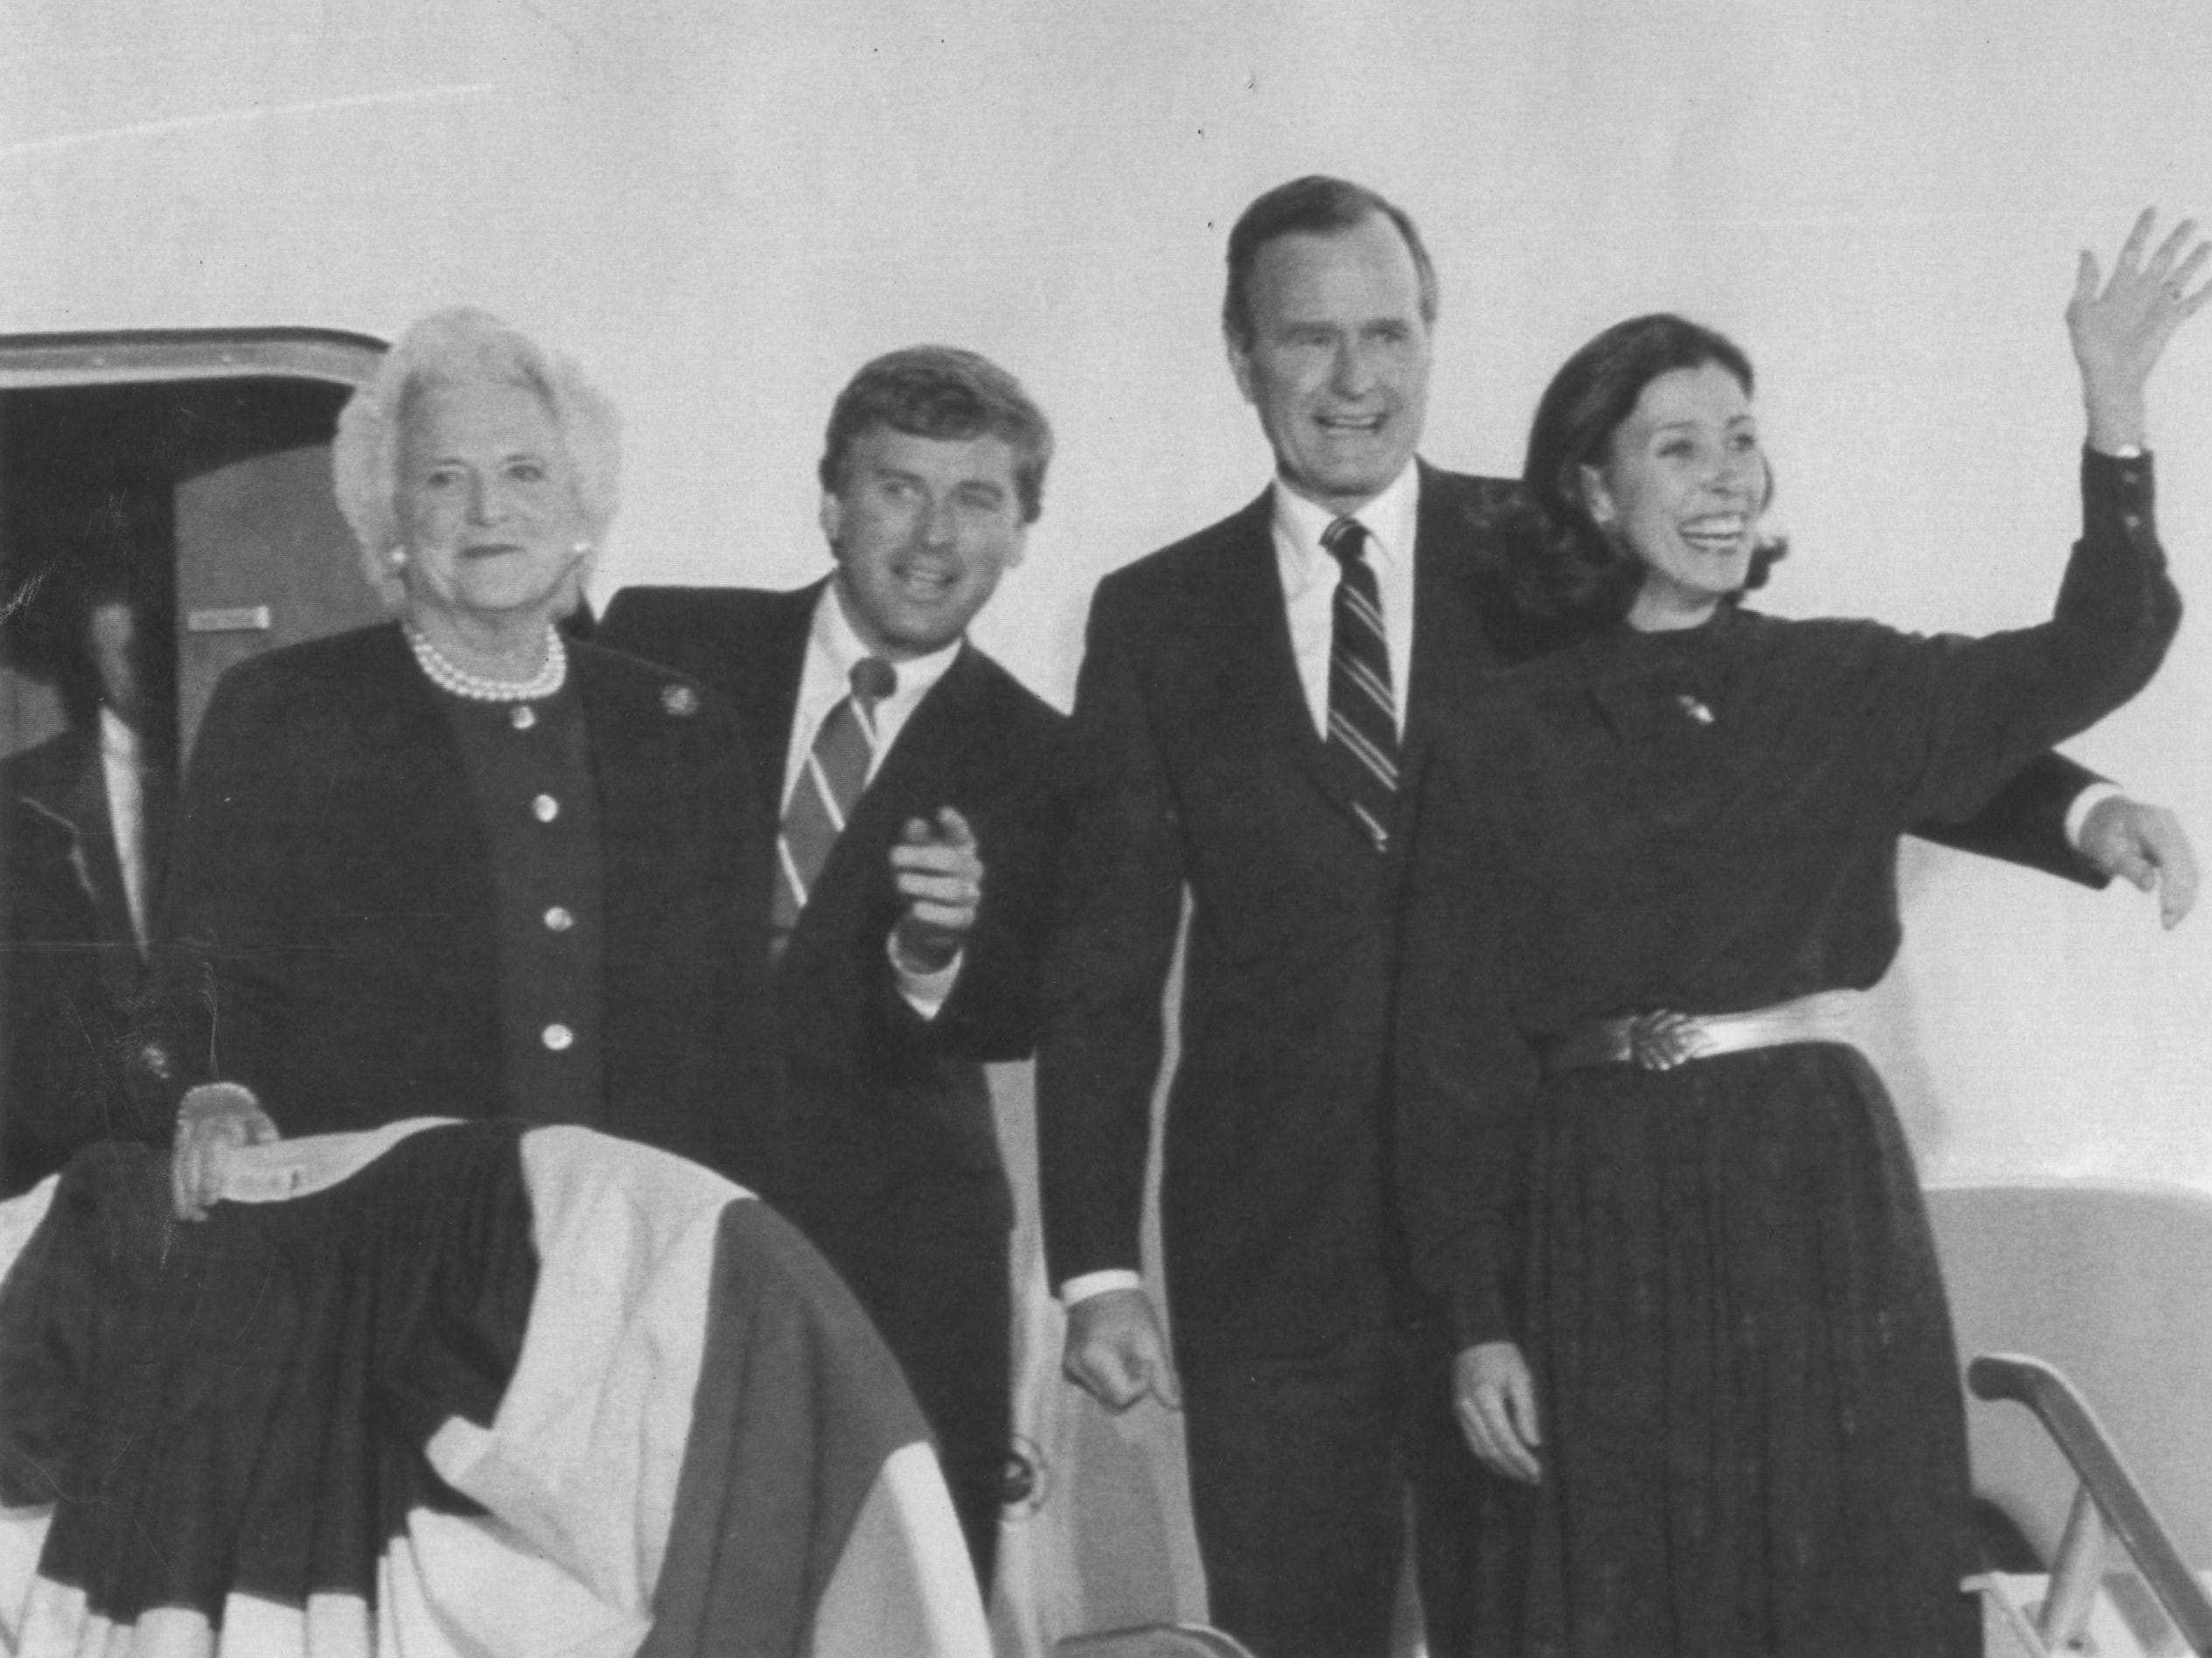 Smiles and waves greet the crowd at Andrews Air Force Base as President-elect George H.W. Bush (second from right) and his wife Barbara, left, along with Vice-President elect Dan Quayle, second from left, and his wife Marilyn, right, step off the plane on Nov. 9, 1988.